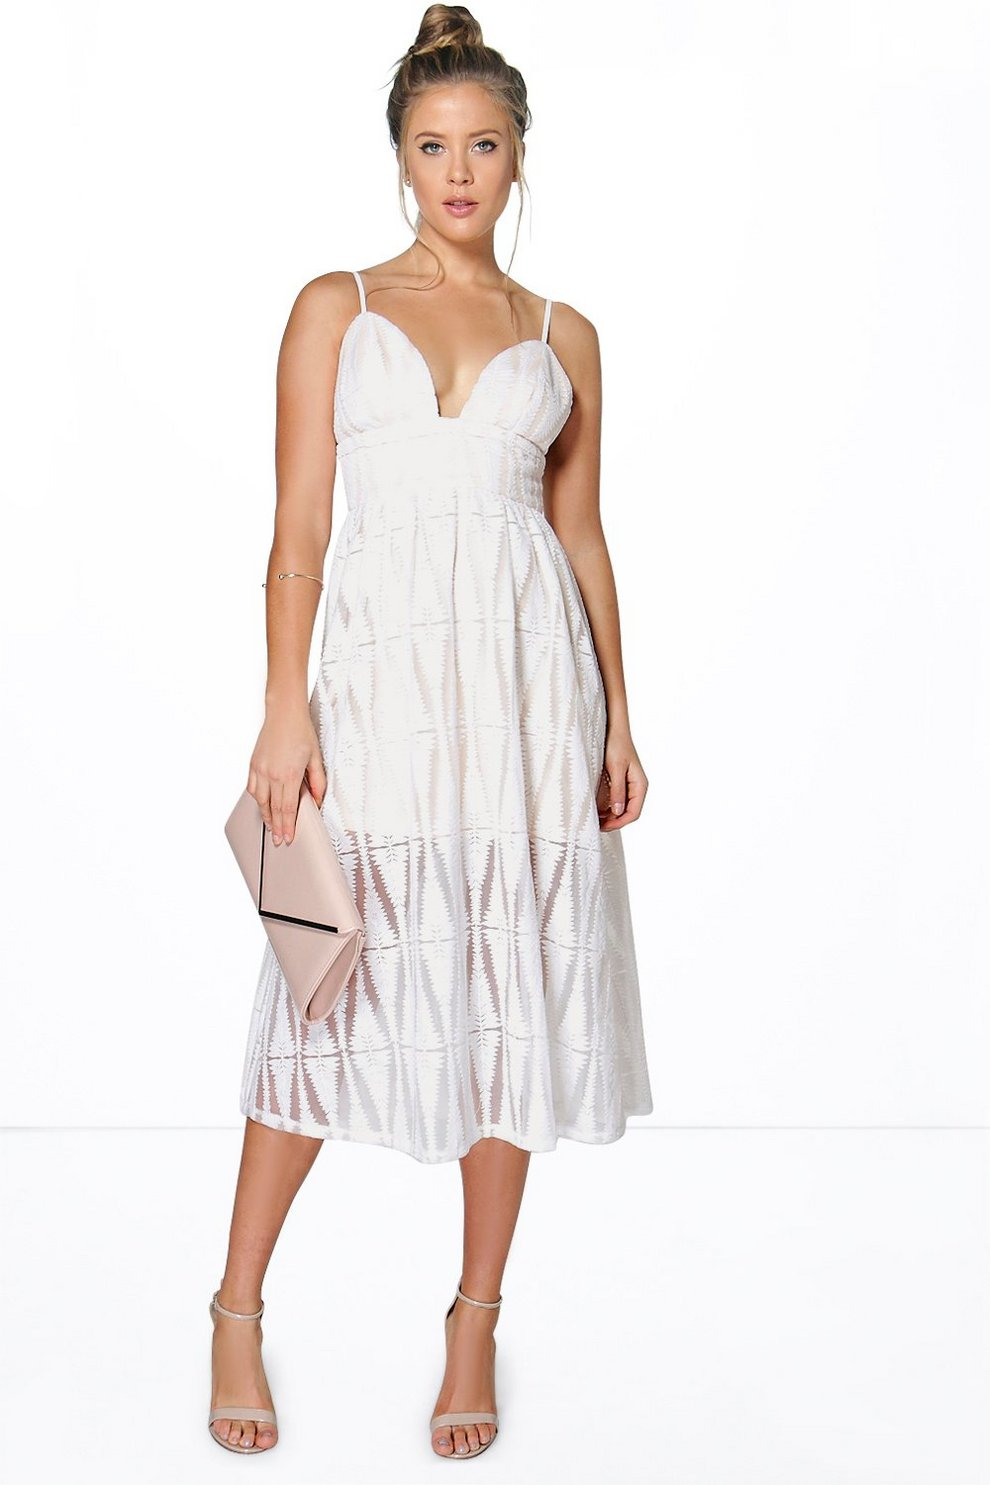 Boohoo Boutiqie Embroidered Organza Midi Dress Buy Cheap Shop For Factory Outlet For Sale Pick A Best Sale Online AuMfb